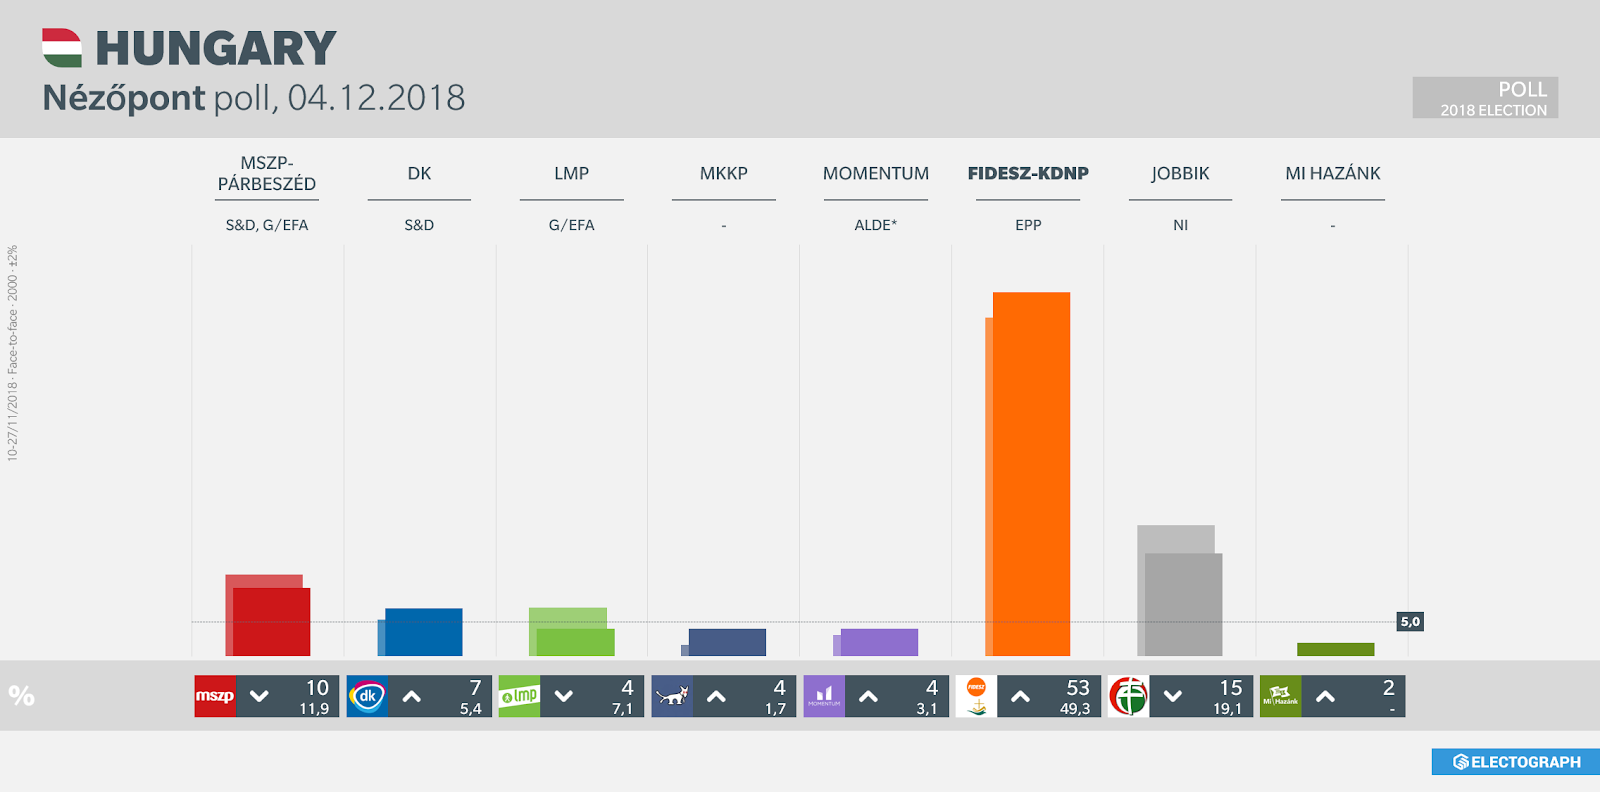 HUNGARY: Nézőpont poll chart, 4 December 2018